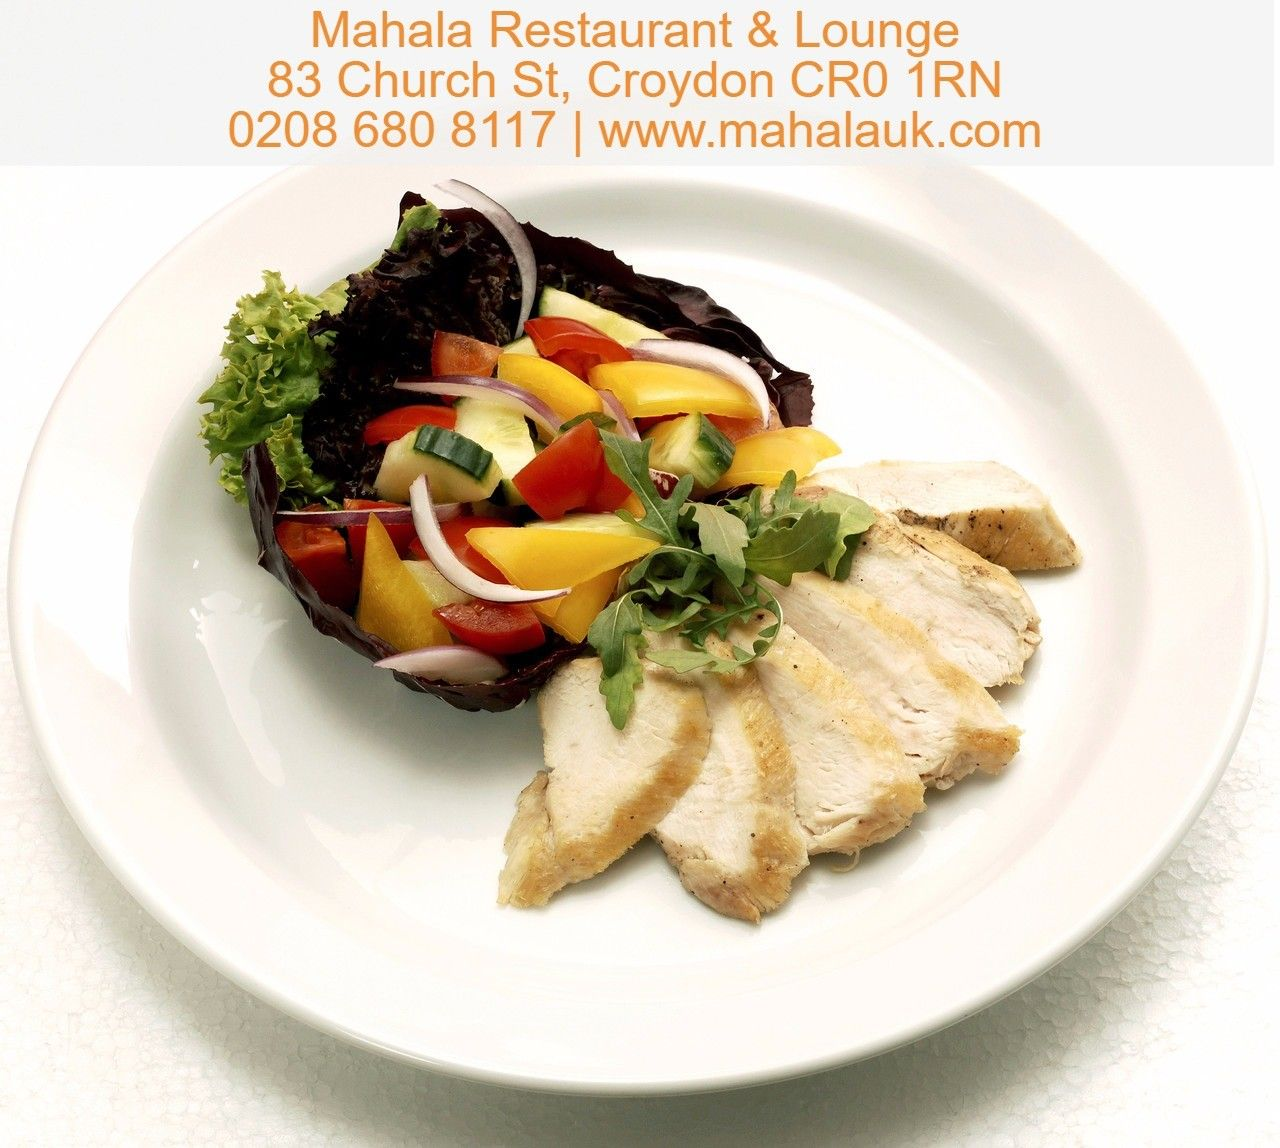 Mahala Restaurant & Lounge Offers The True Heart And Soul